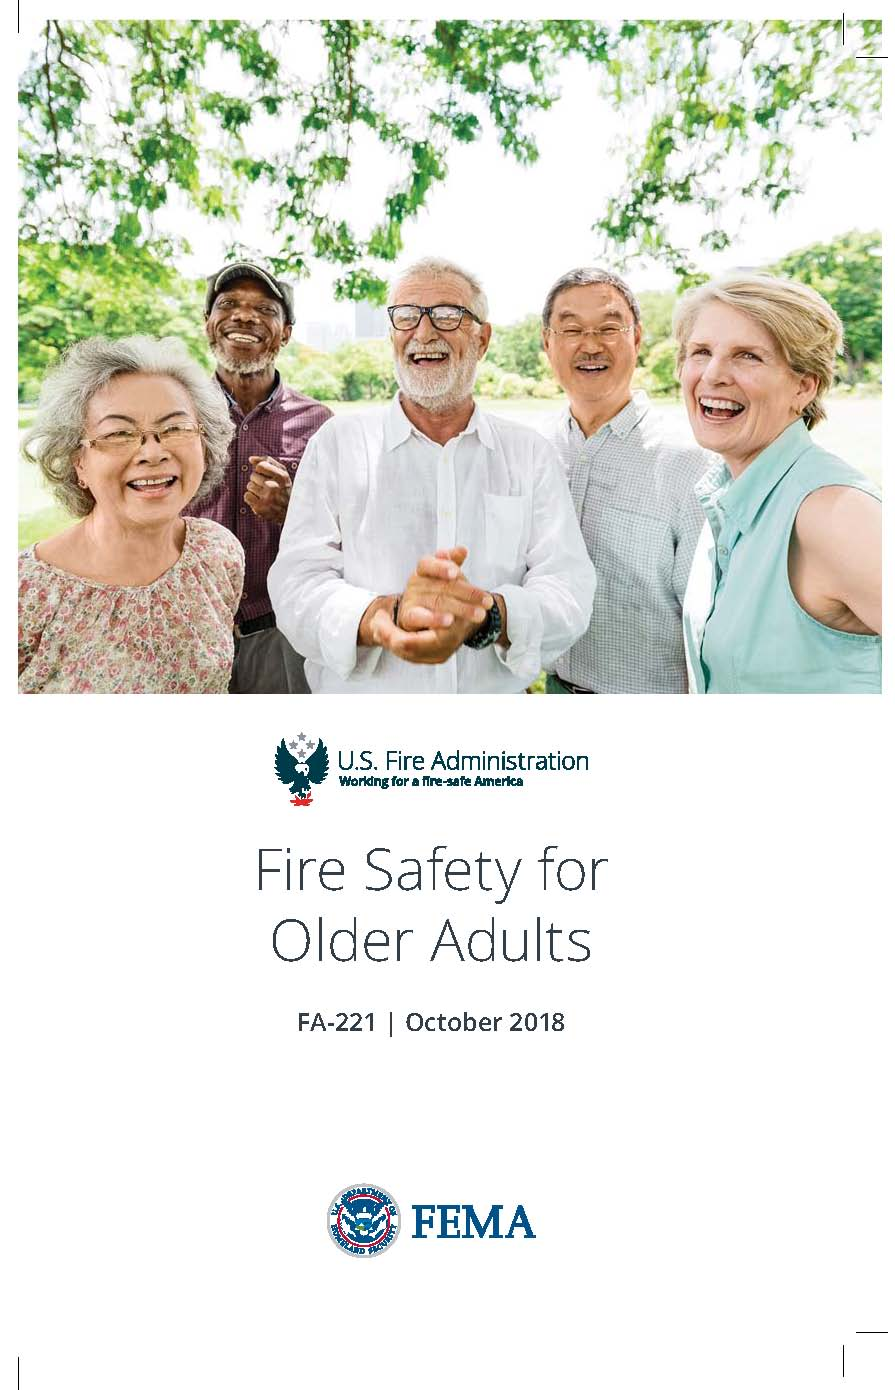 Fire Safety for Older Adults 1 Opens in new window